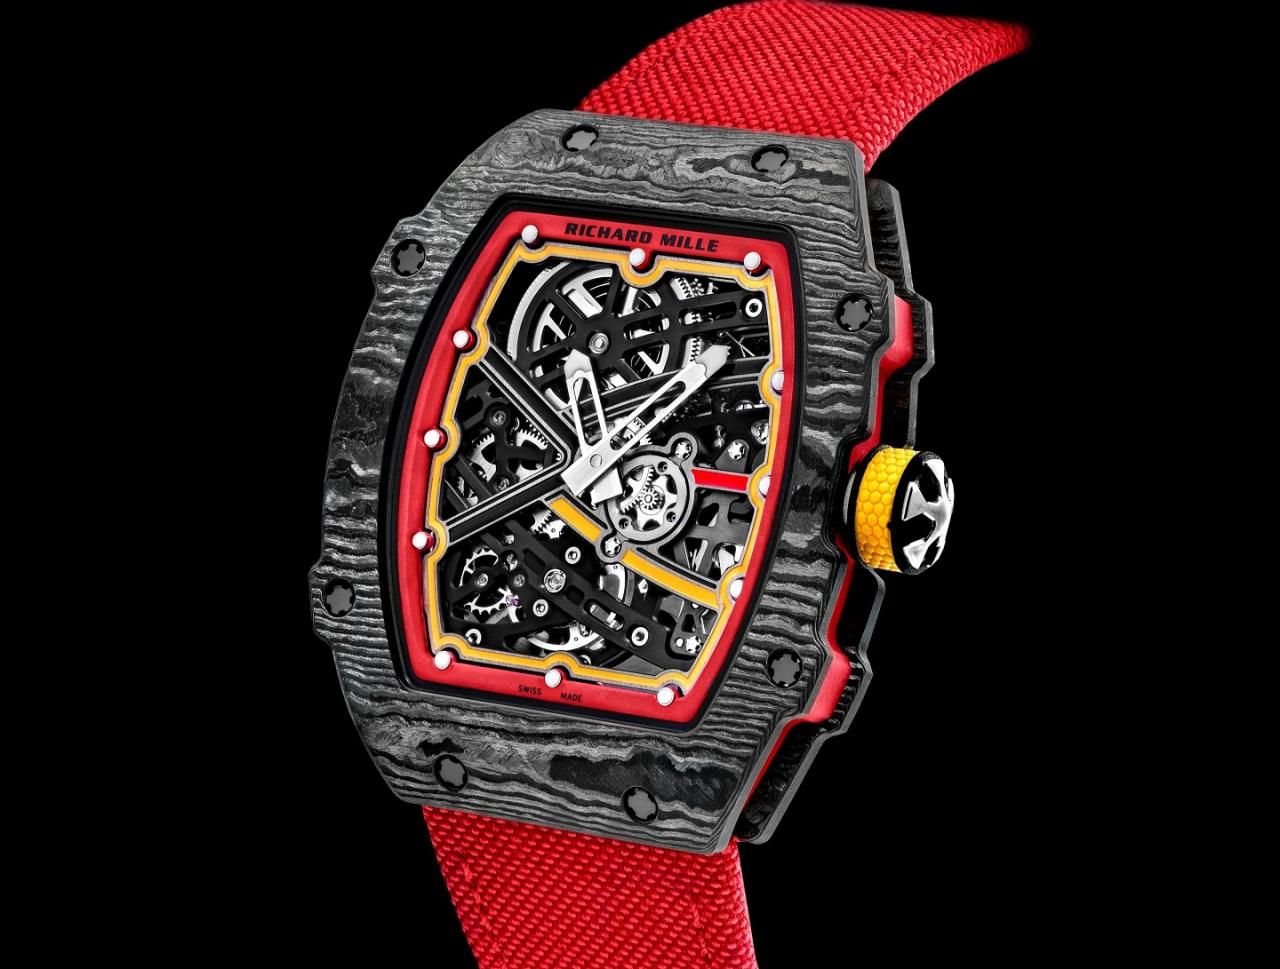 Replica Buyers Guide Richard Mille RM 67-02 Alexander Zverev Edition Watch